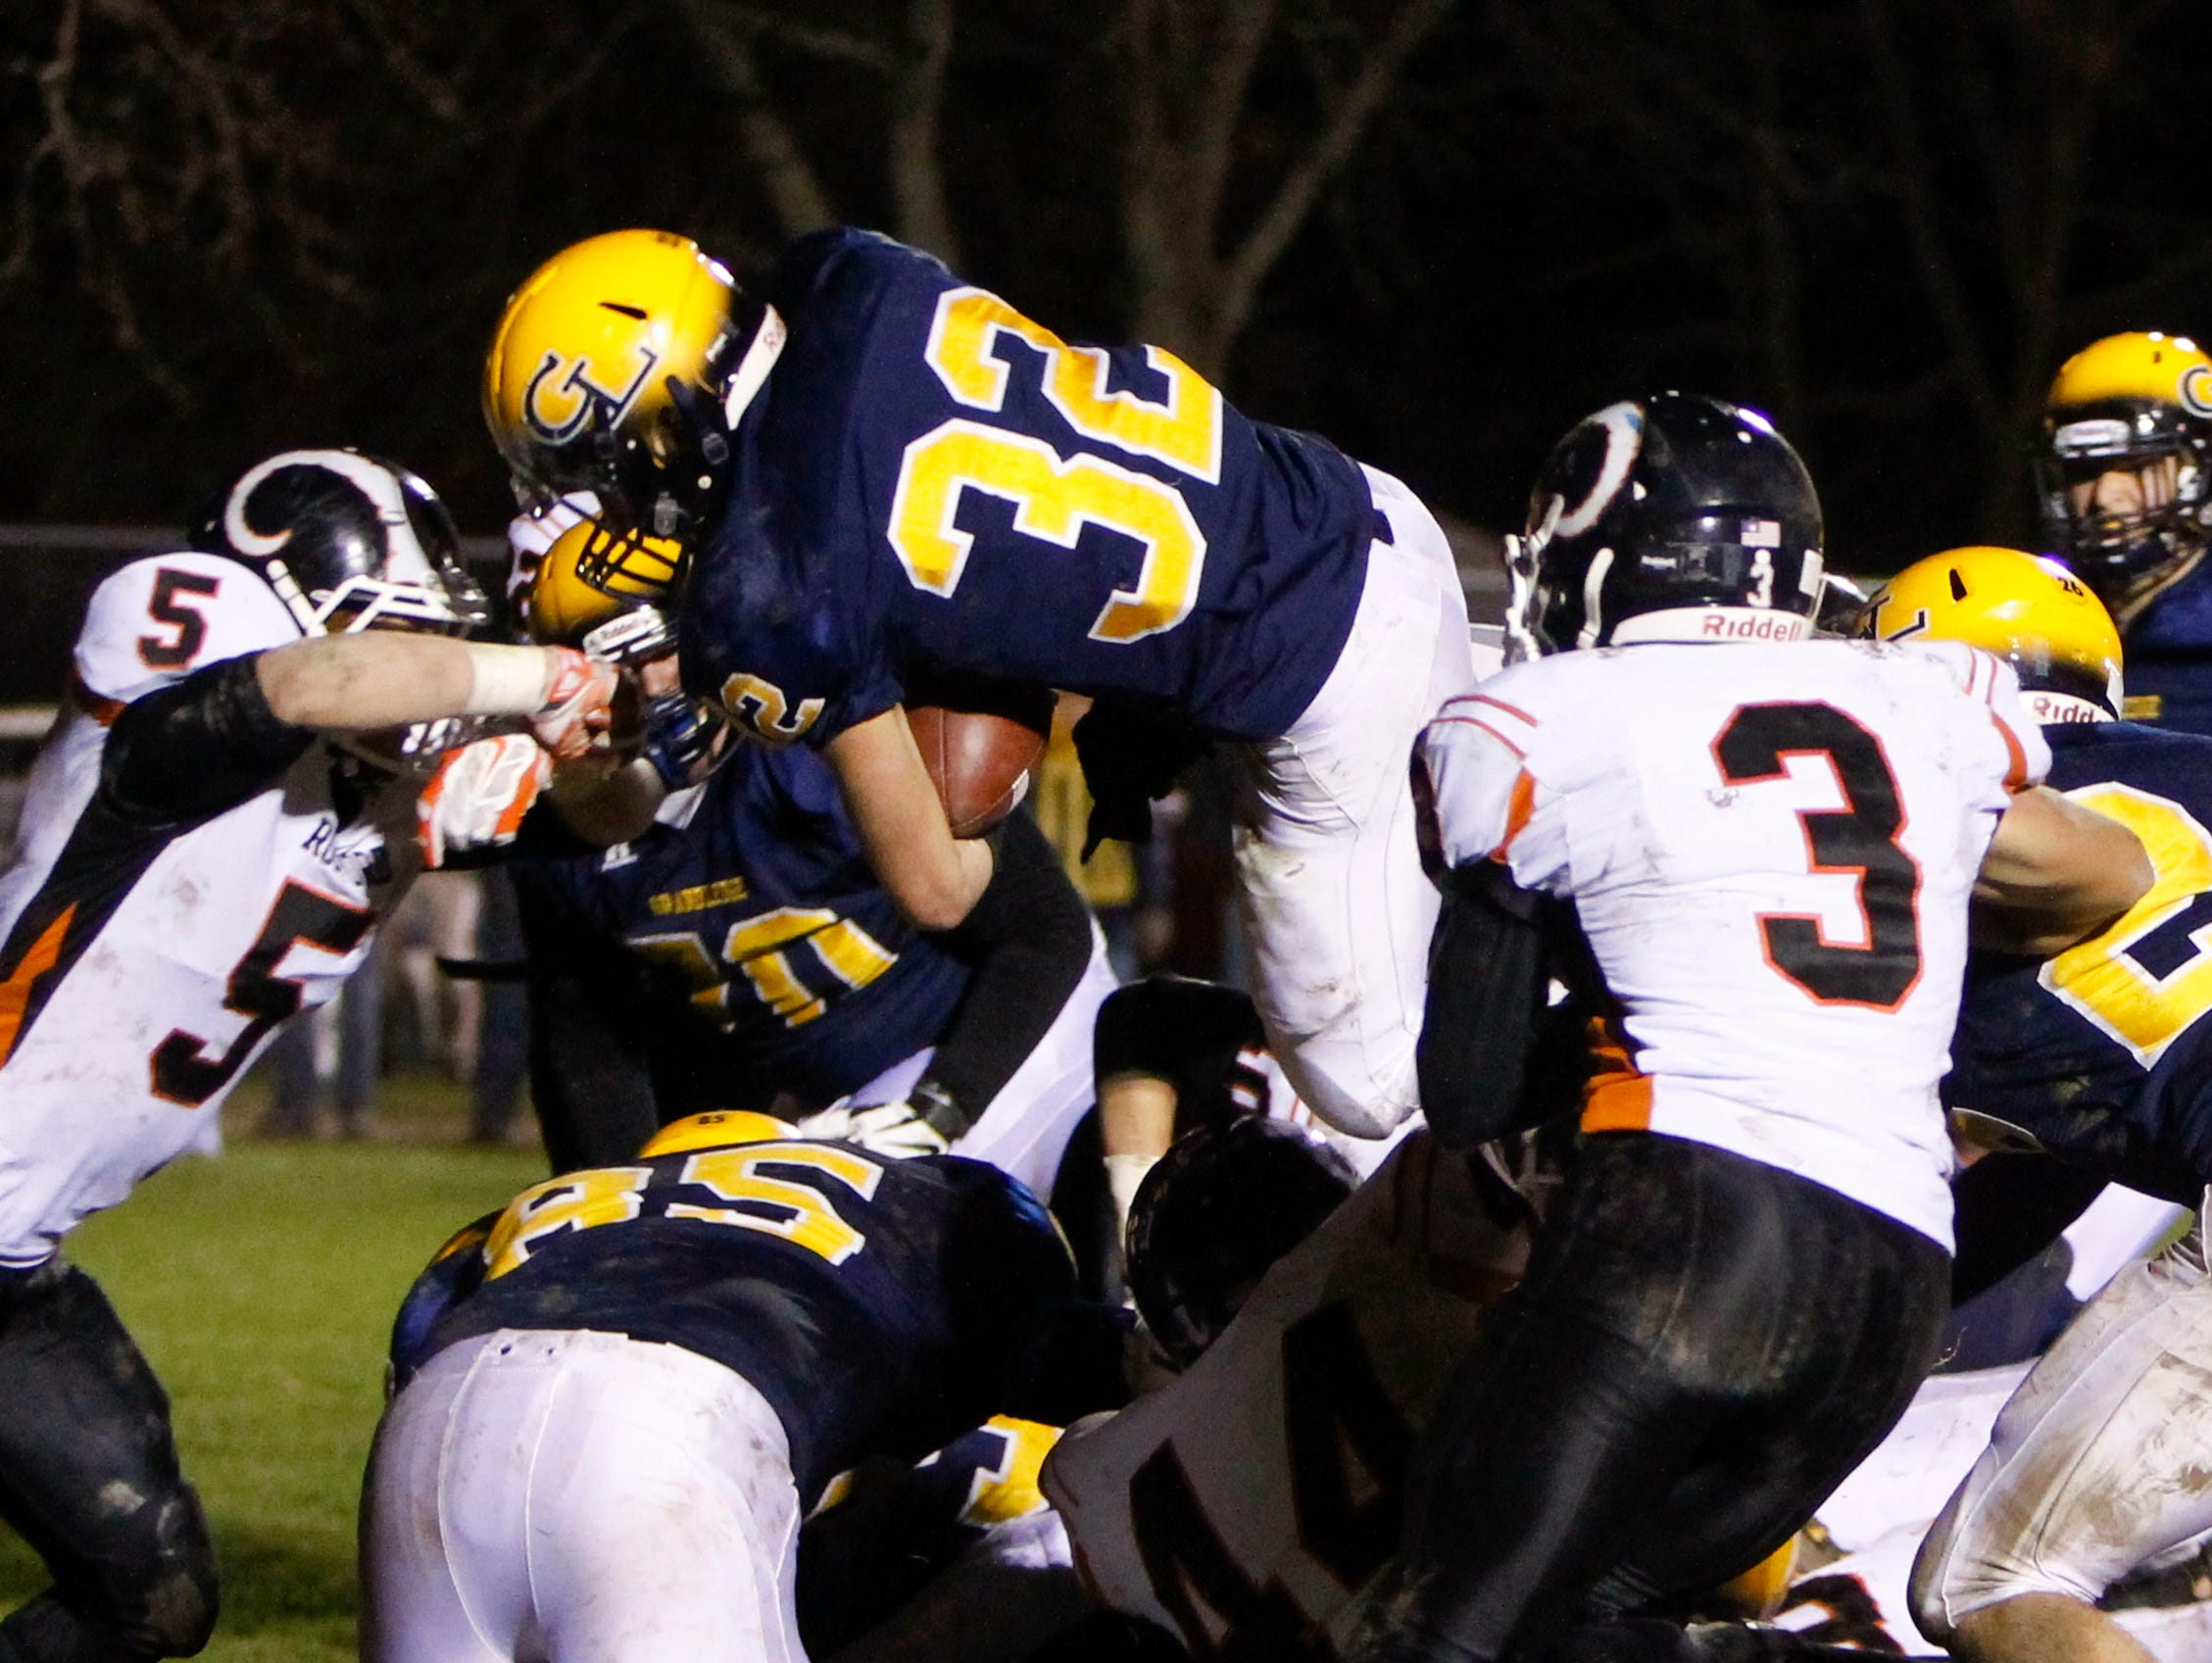 Grand Ledge senior Caden Evert goes up and over the line of scrimmage Friday, November 13, 2015, during the Div. 1 regional final against Rockford for a touchdown. Grand Ledge won 36-16 at home.